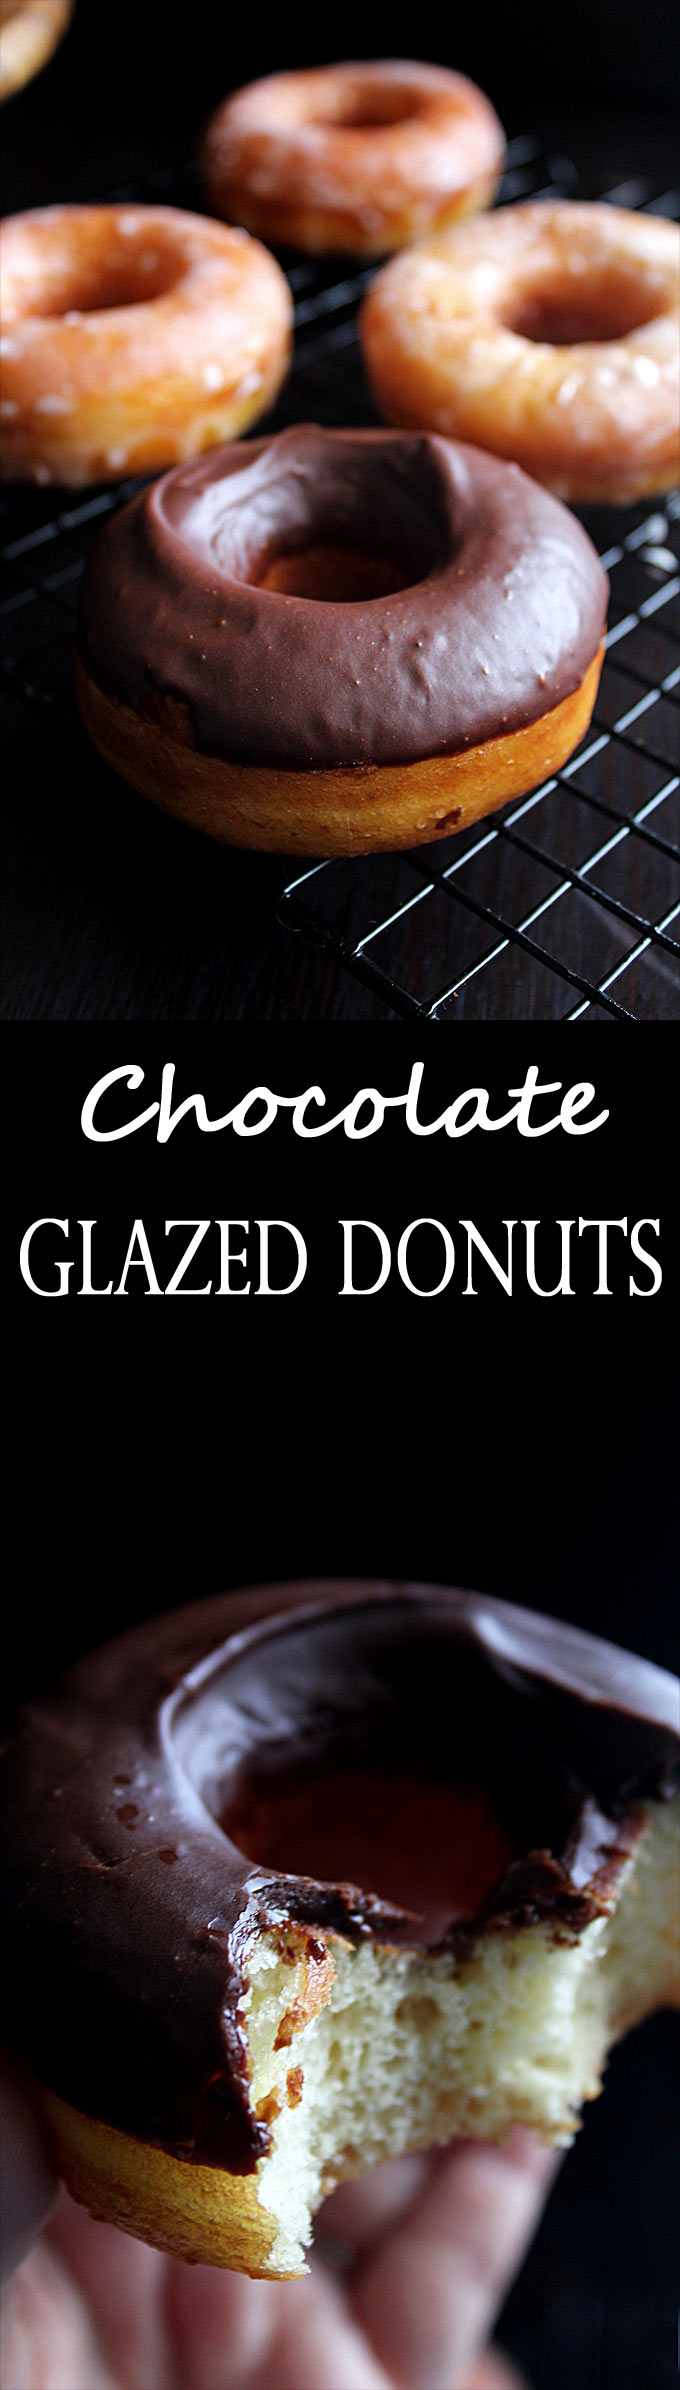 Chocolate Glazed Donut | Cinnamon Sugar Donut Holes | Chocolate Doughnut Recipe | Easy Donut Recipe | Chocolate Glaze Recipe | Fried Donuts